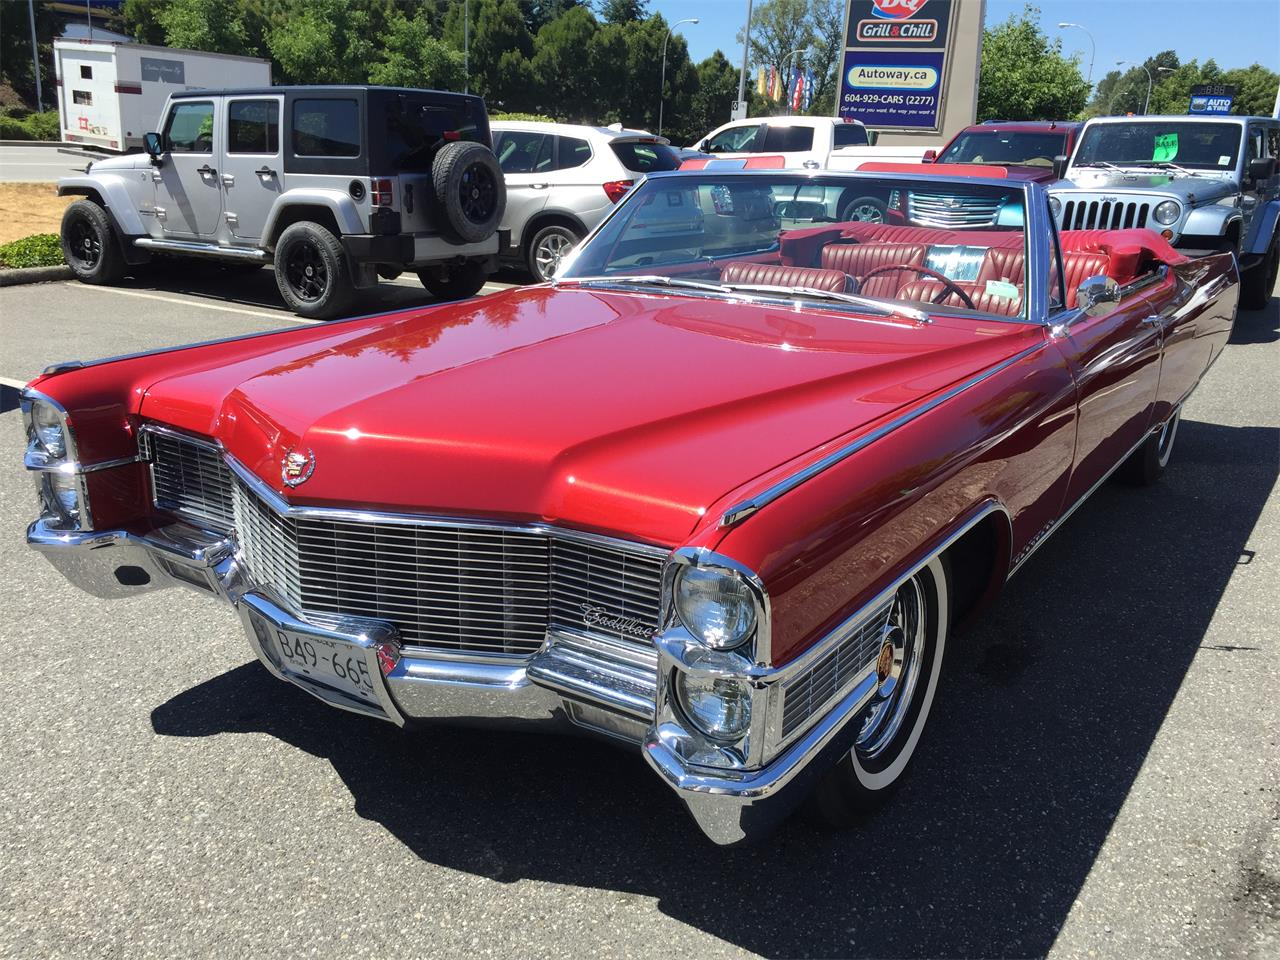 Large Picture of '65 Cadillac Eldorado Brougham - $40,000.00 Offered by a Private Seller - N3D3